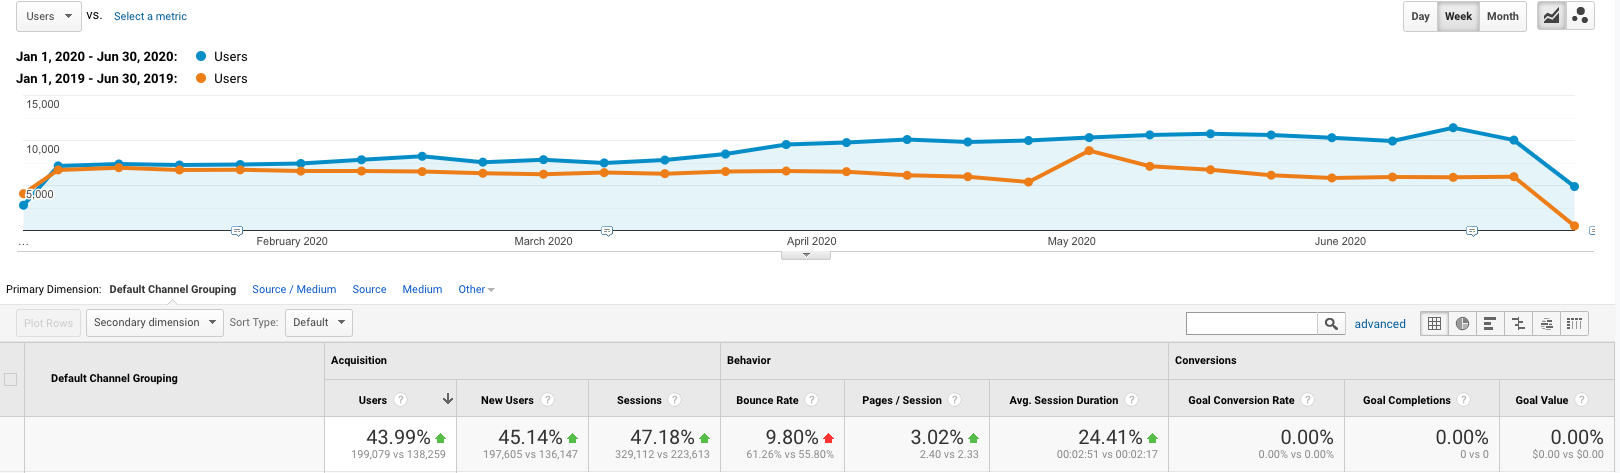 Screenshot showing Google Analytics data from *.Mautic.org